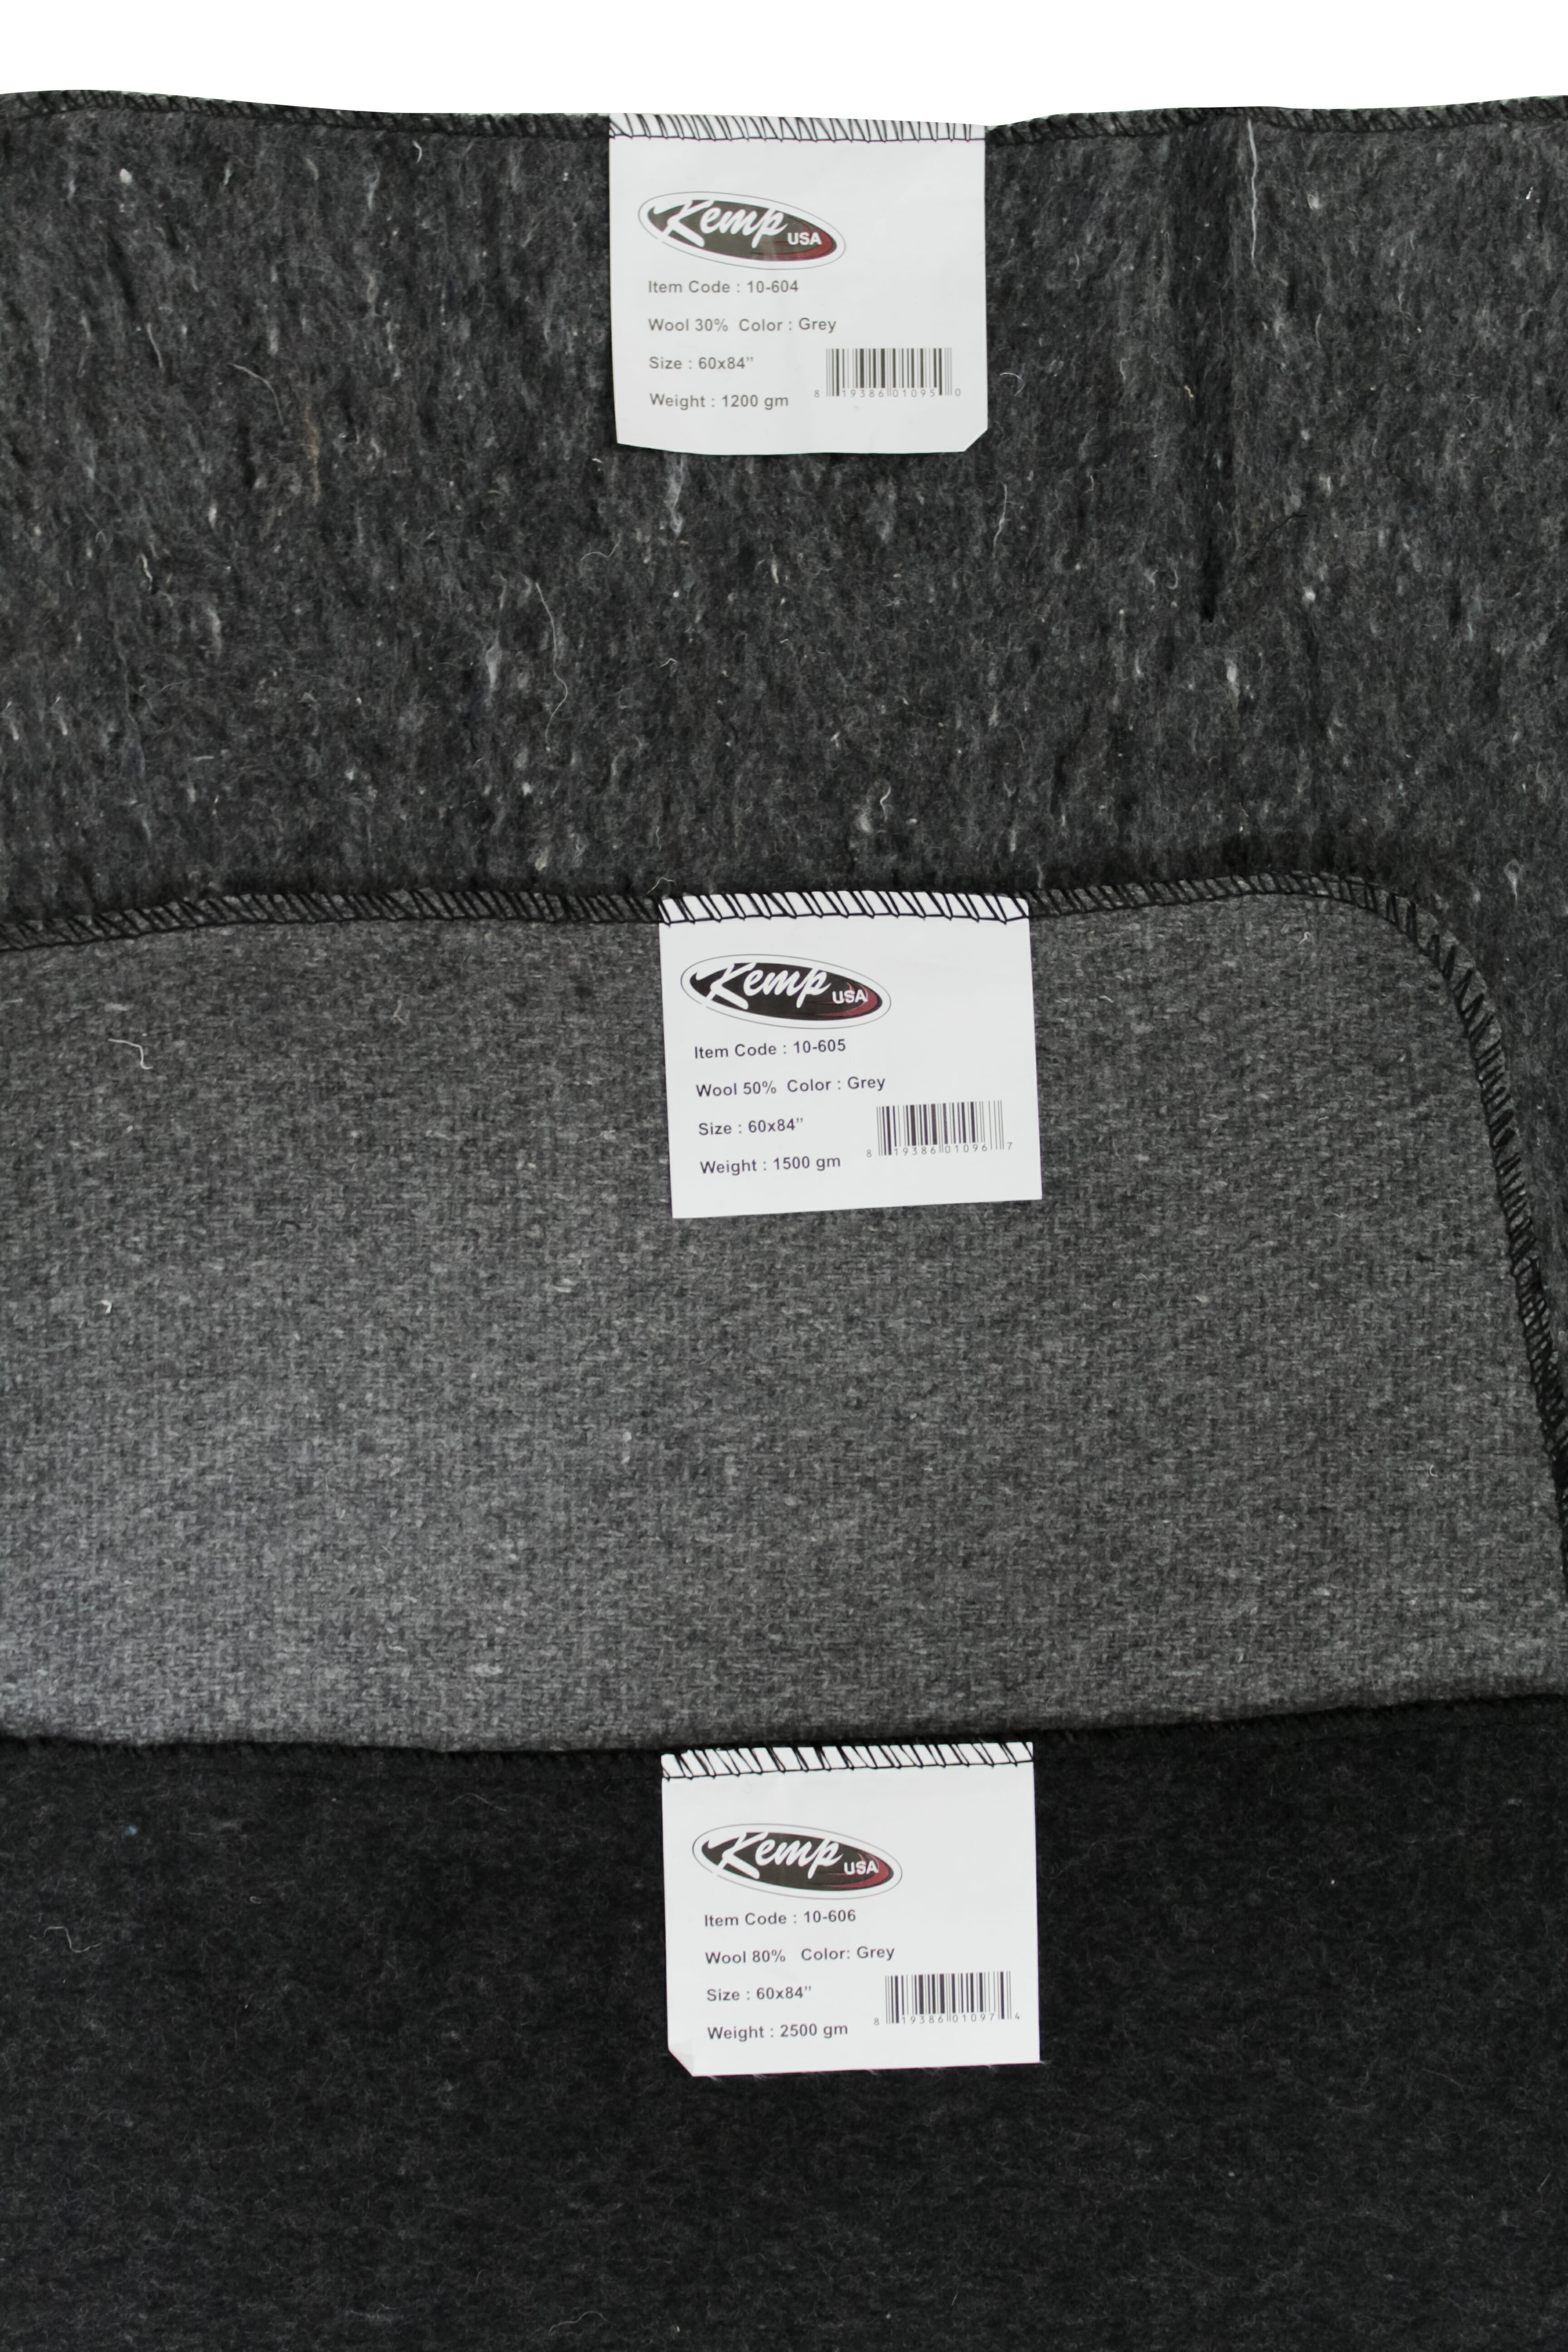 KEMP Grey Blanket 30% Wool